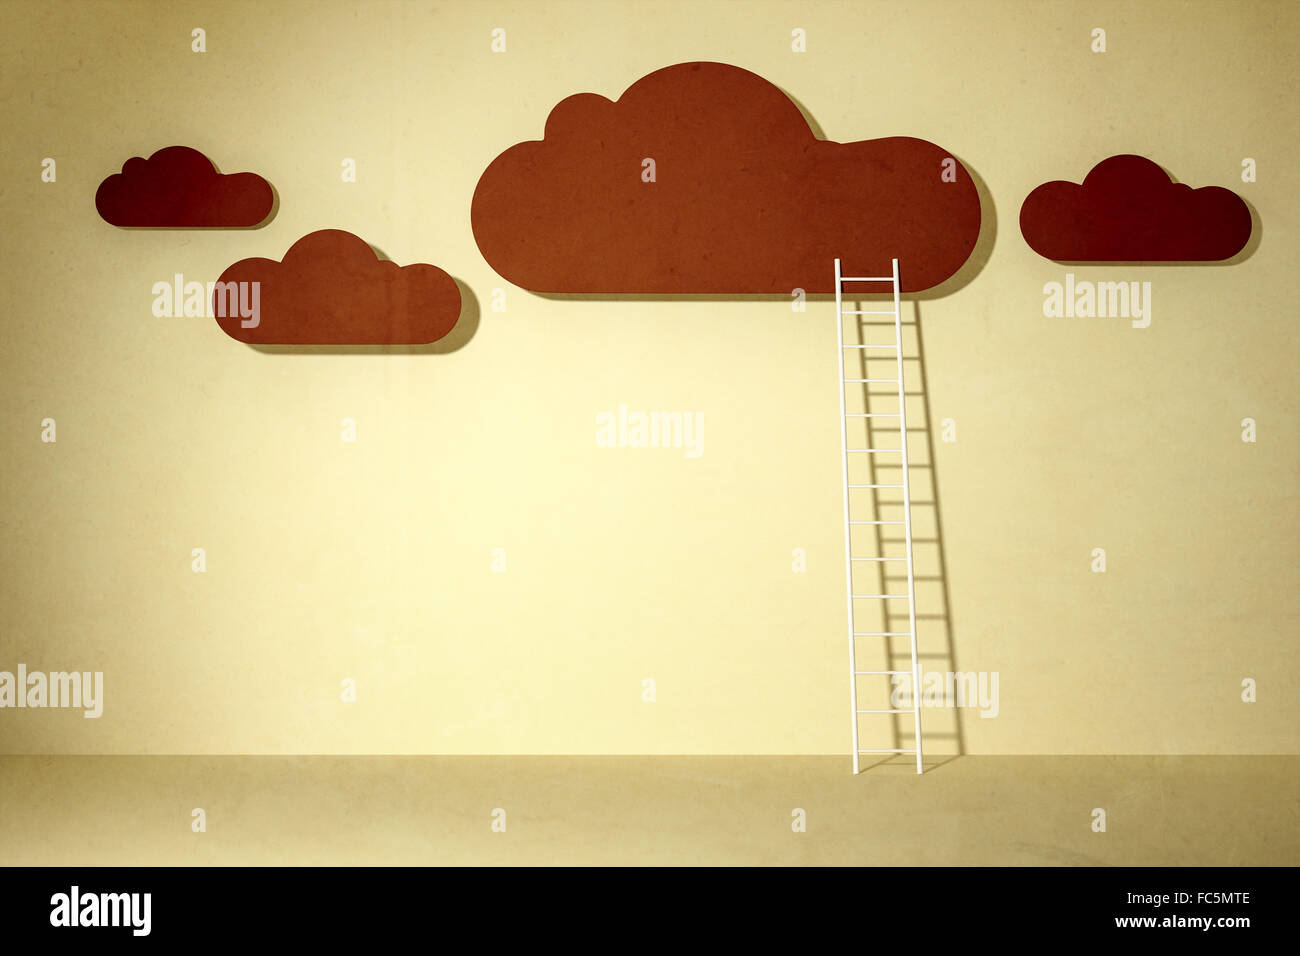 clouds and ladder - Stock Image